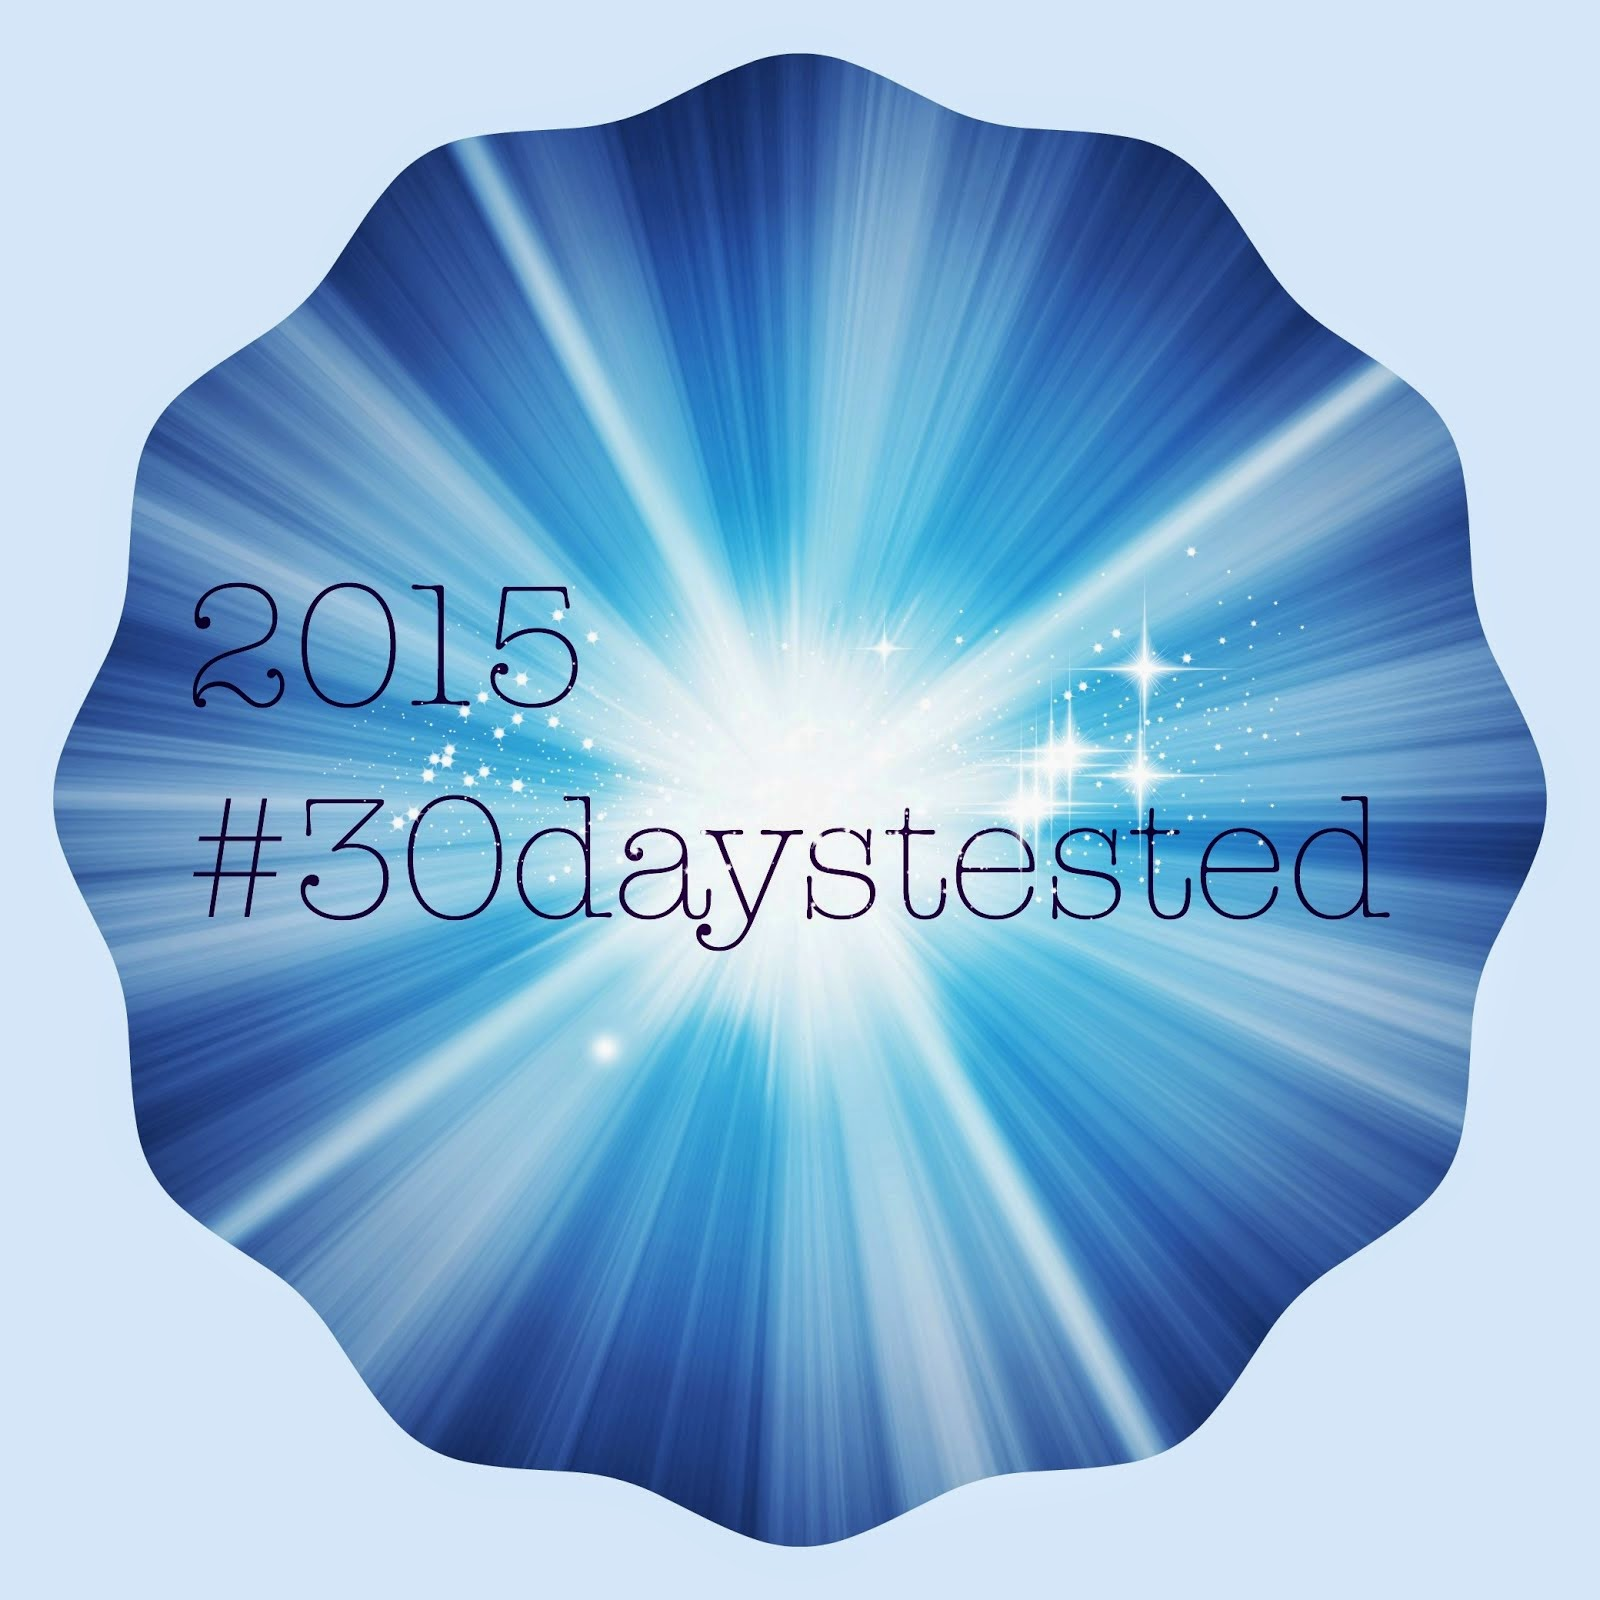 #30daystested